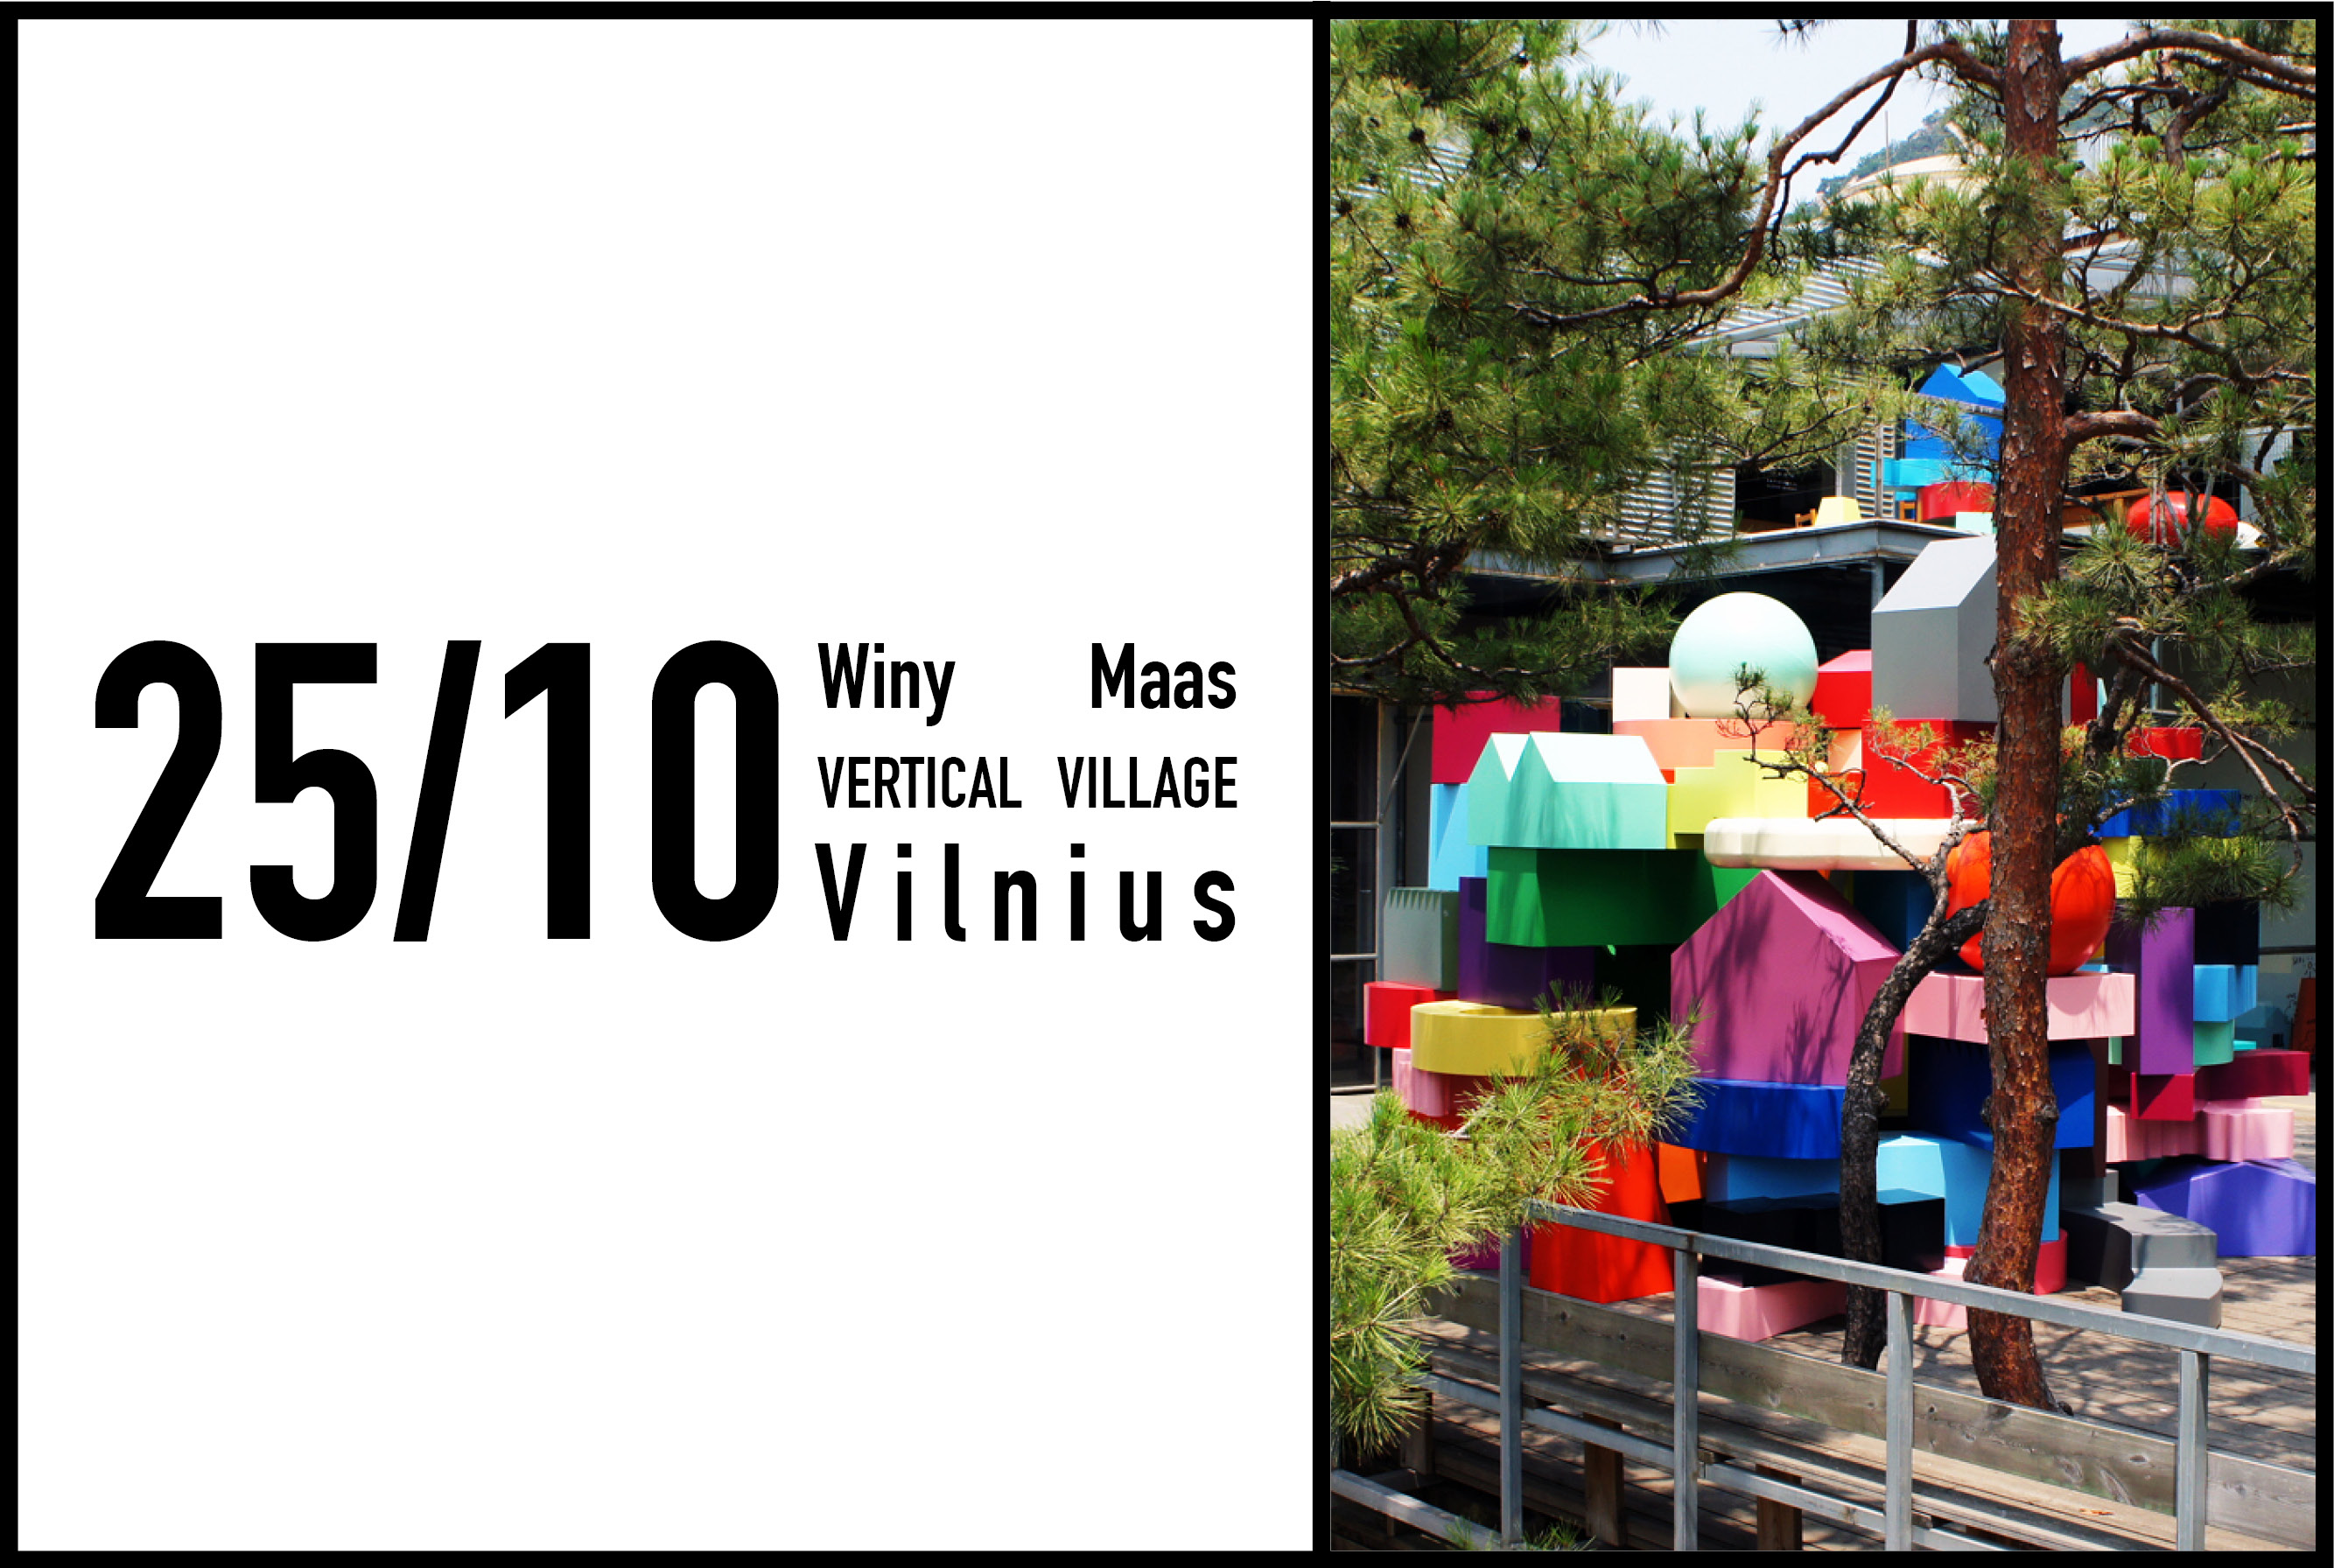 Winy Maas to give a lecture and open Vertical Village at the  Vilnius Energy Museum, 25th October 2016